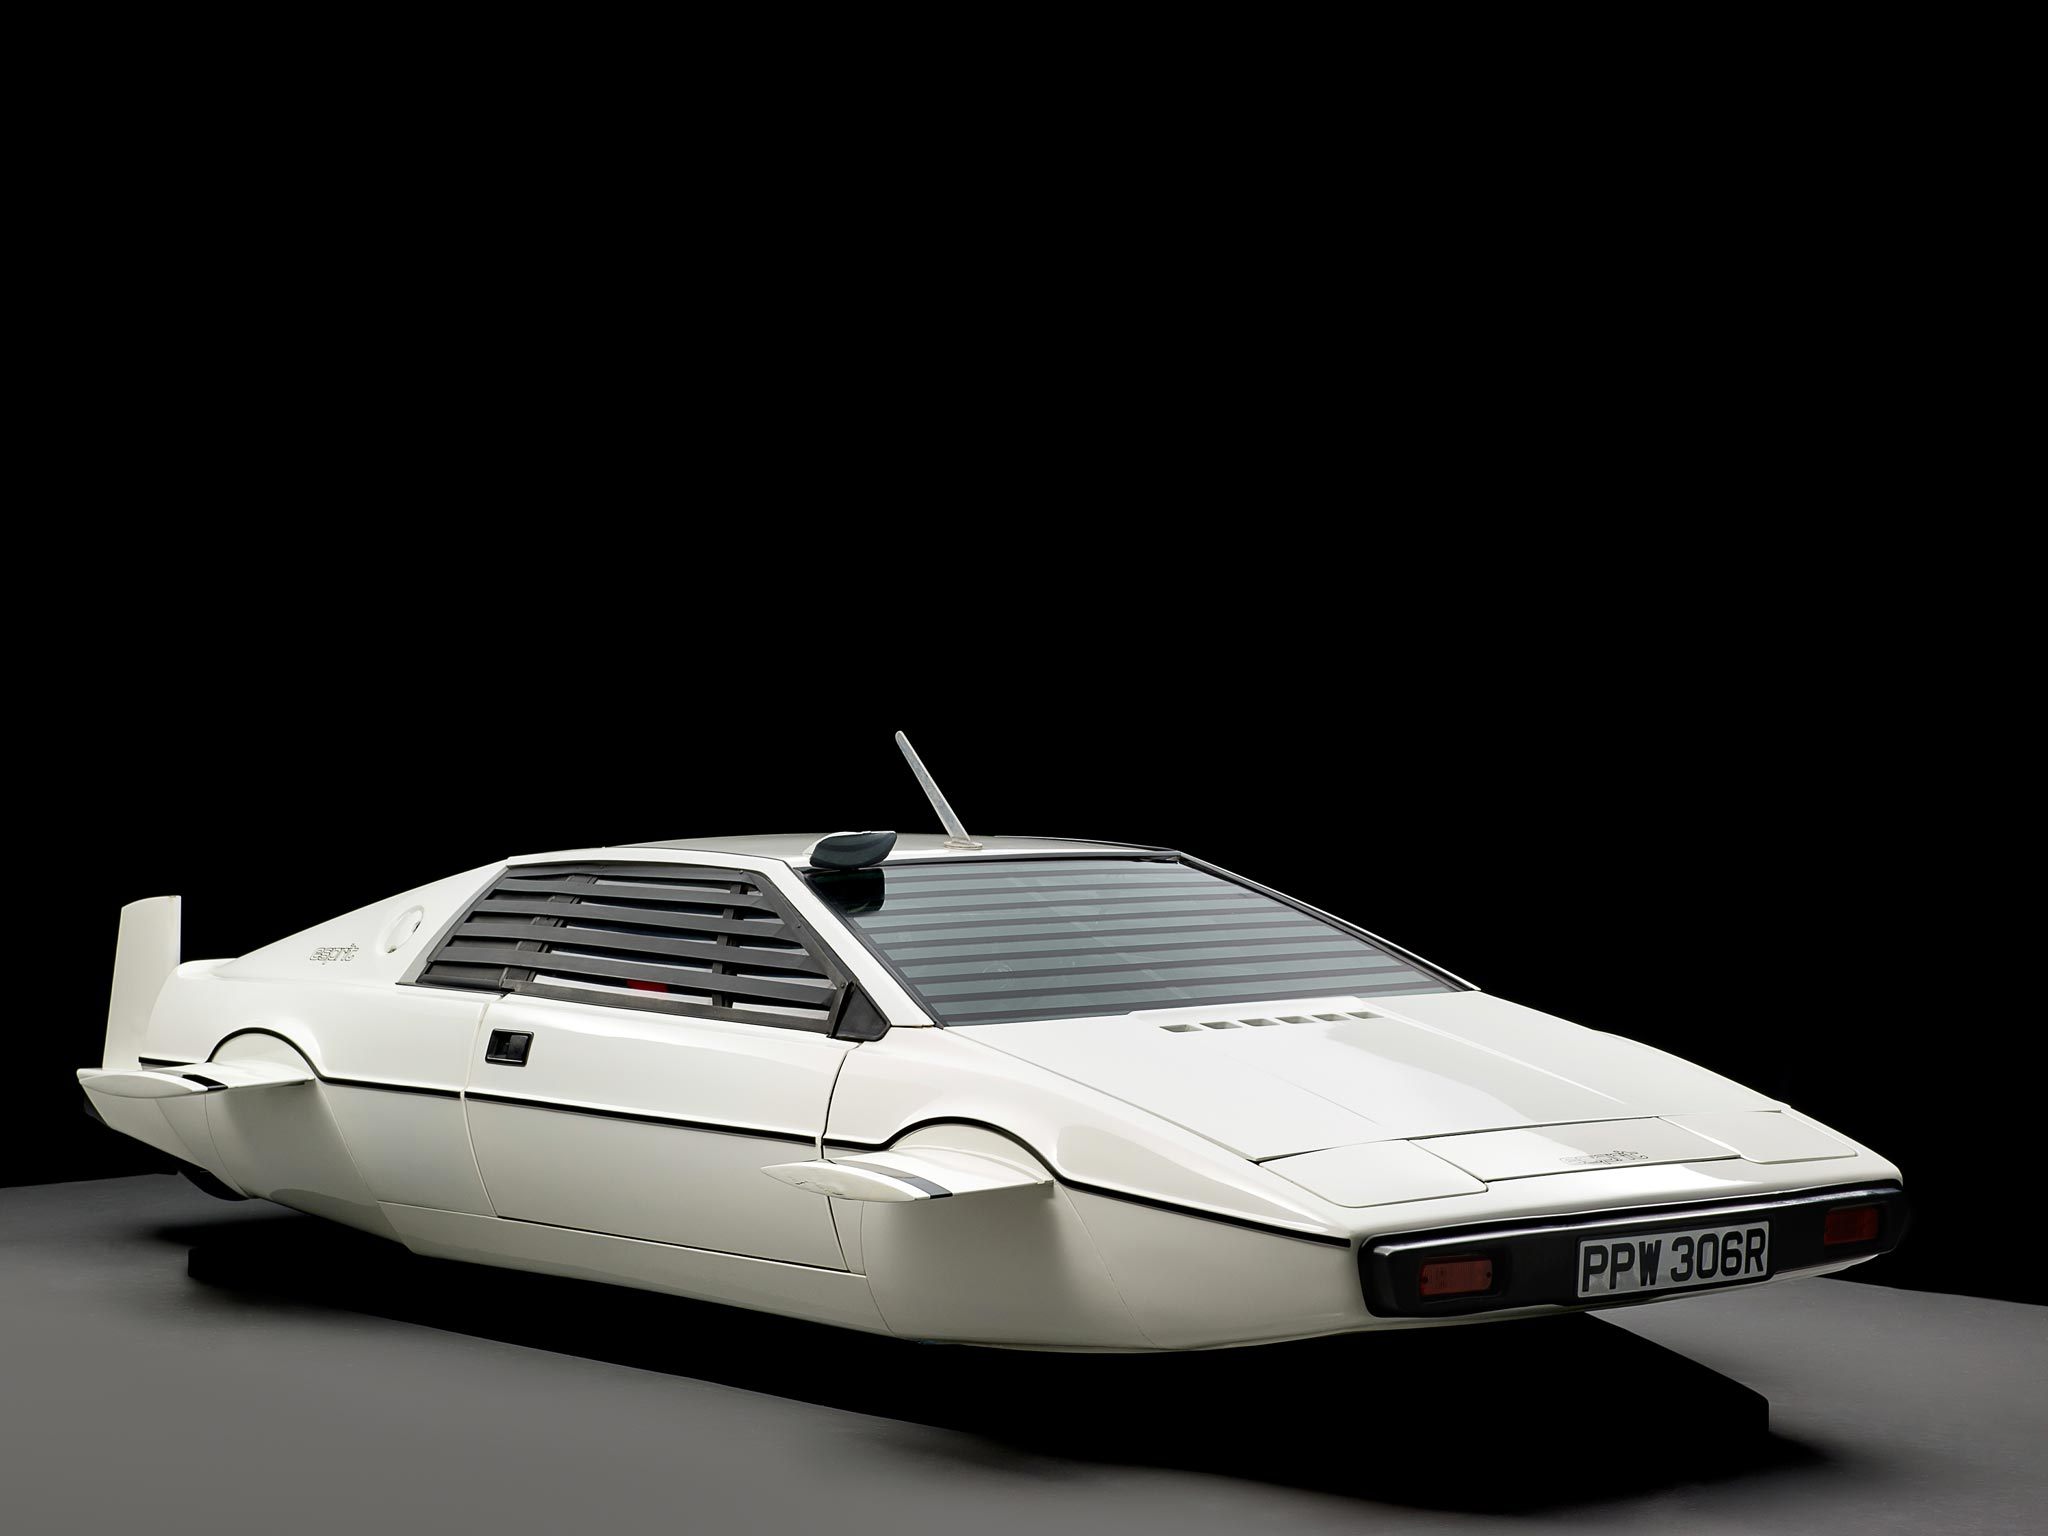 Car Auction Apps >> James Bond submarine car from 'The Spy Who Loved Me' up for auction | Home News | News | The ...